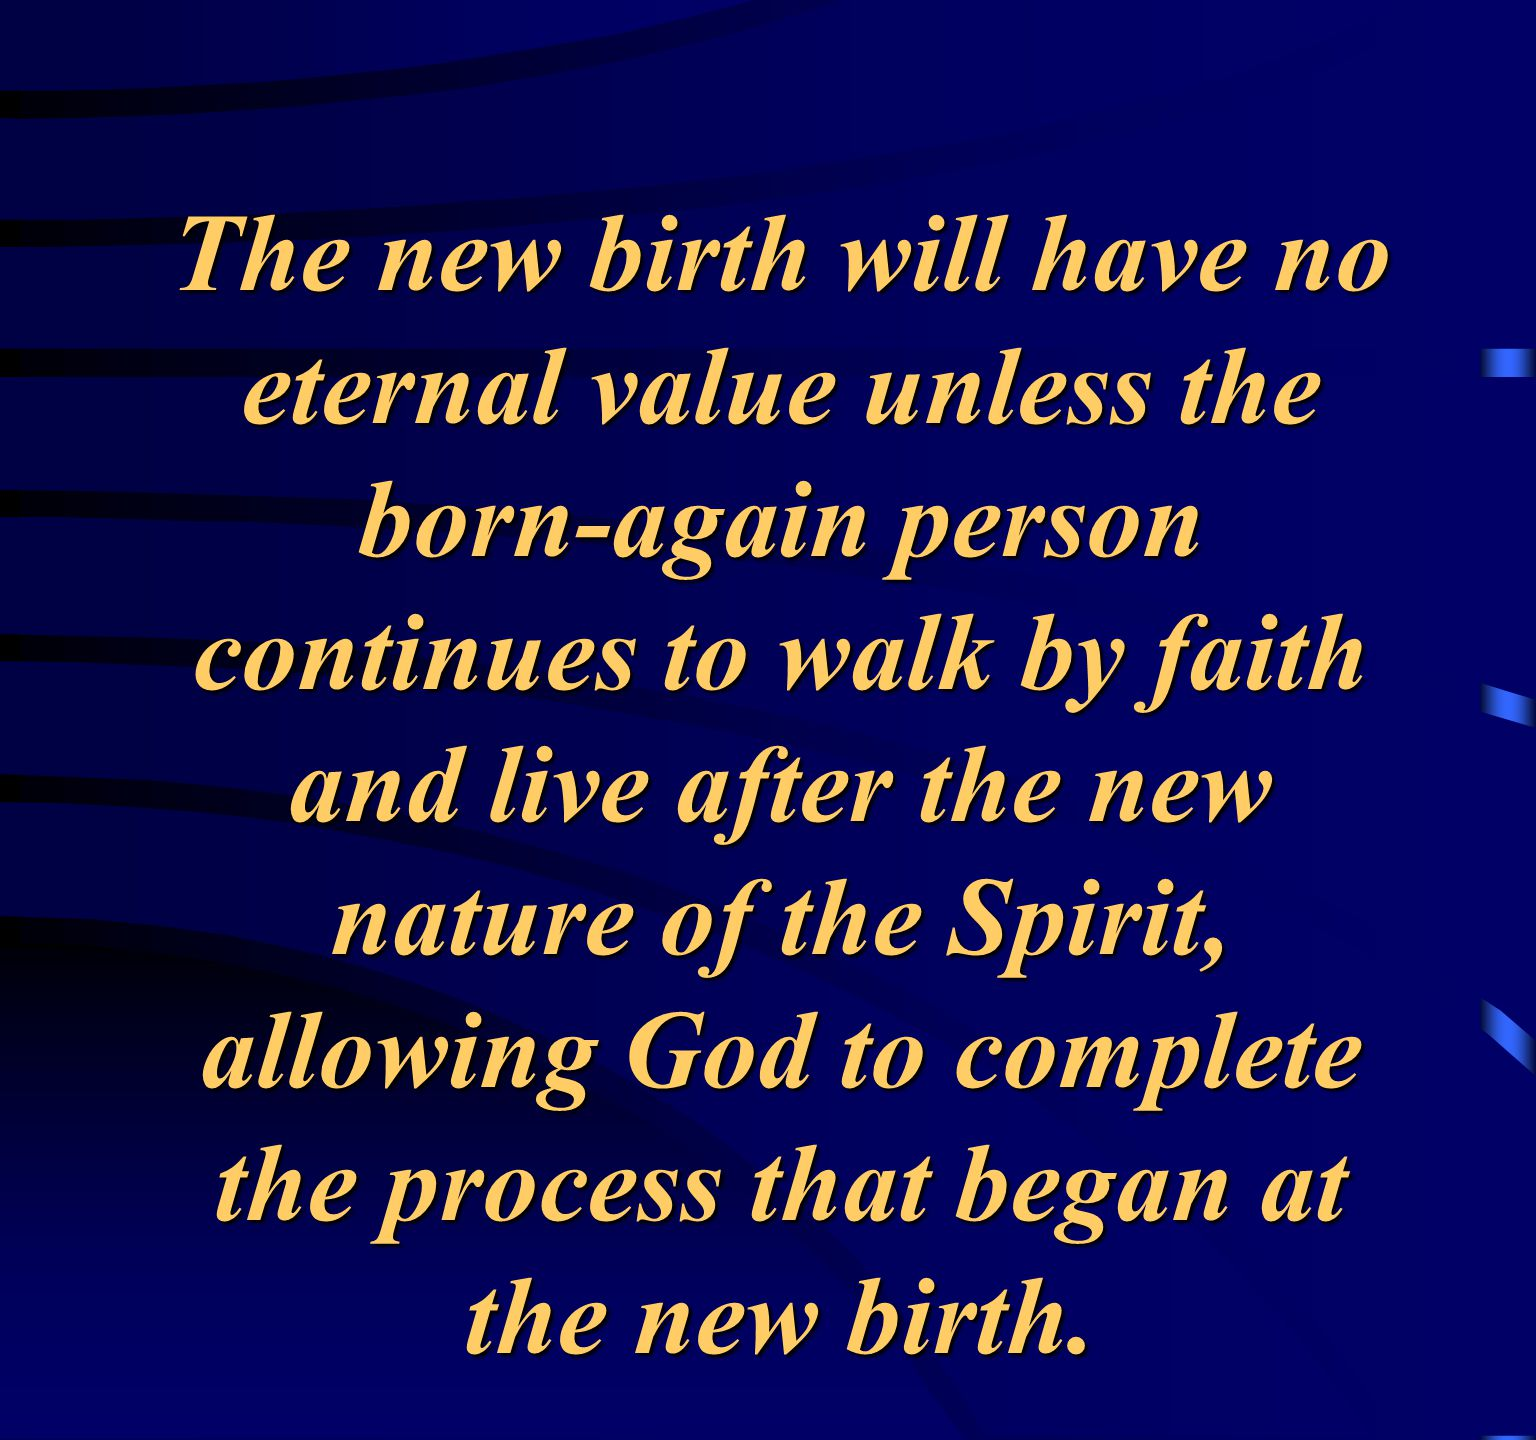 The new birth will have no eternal value unless the born-again person continues to walk by faith and live after the new nature of the Spirit, allowing God to complete the process that began at the new birth.